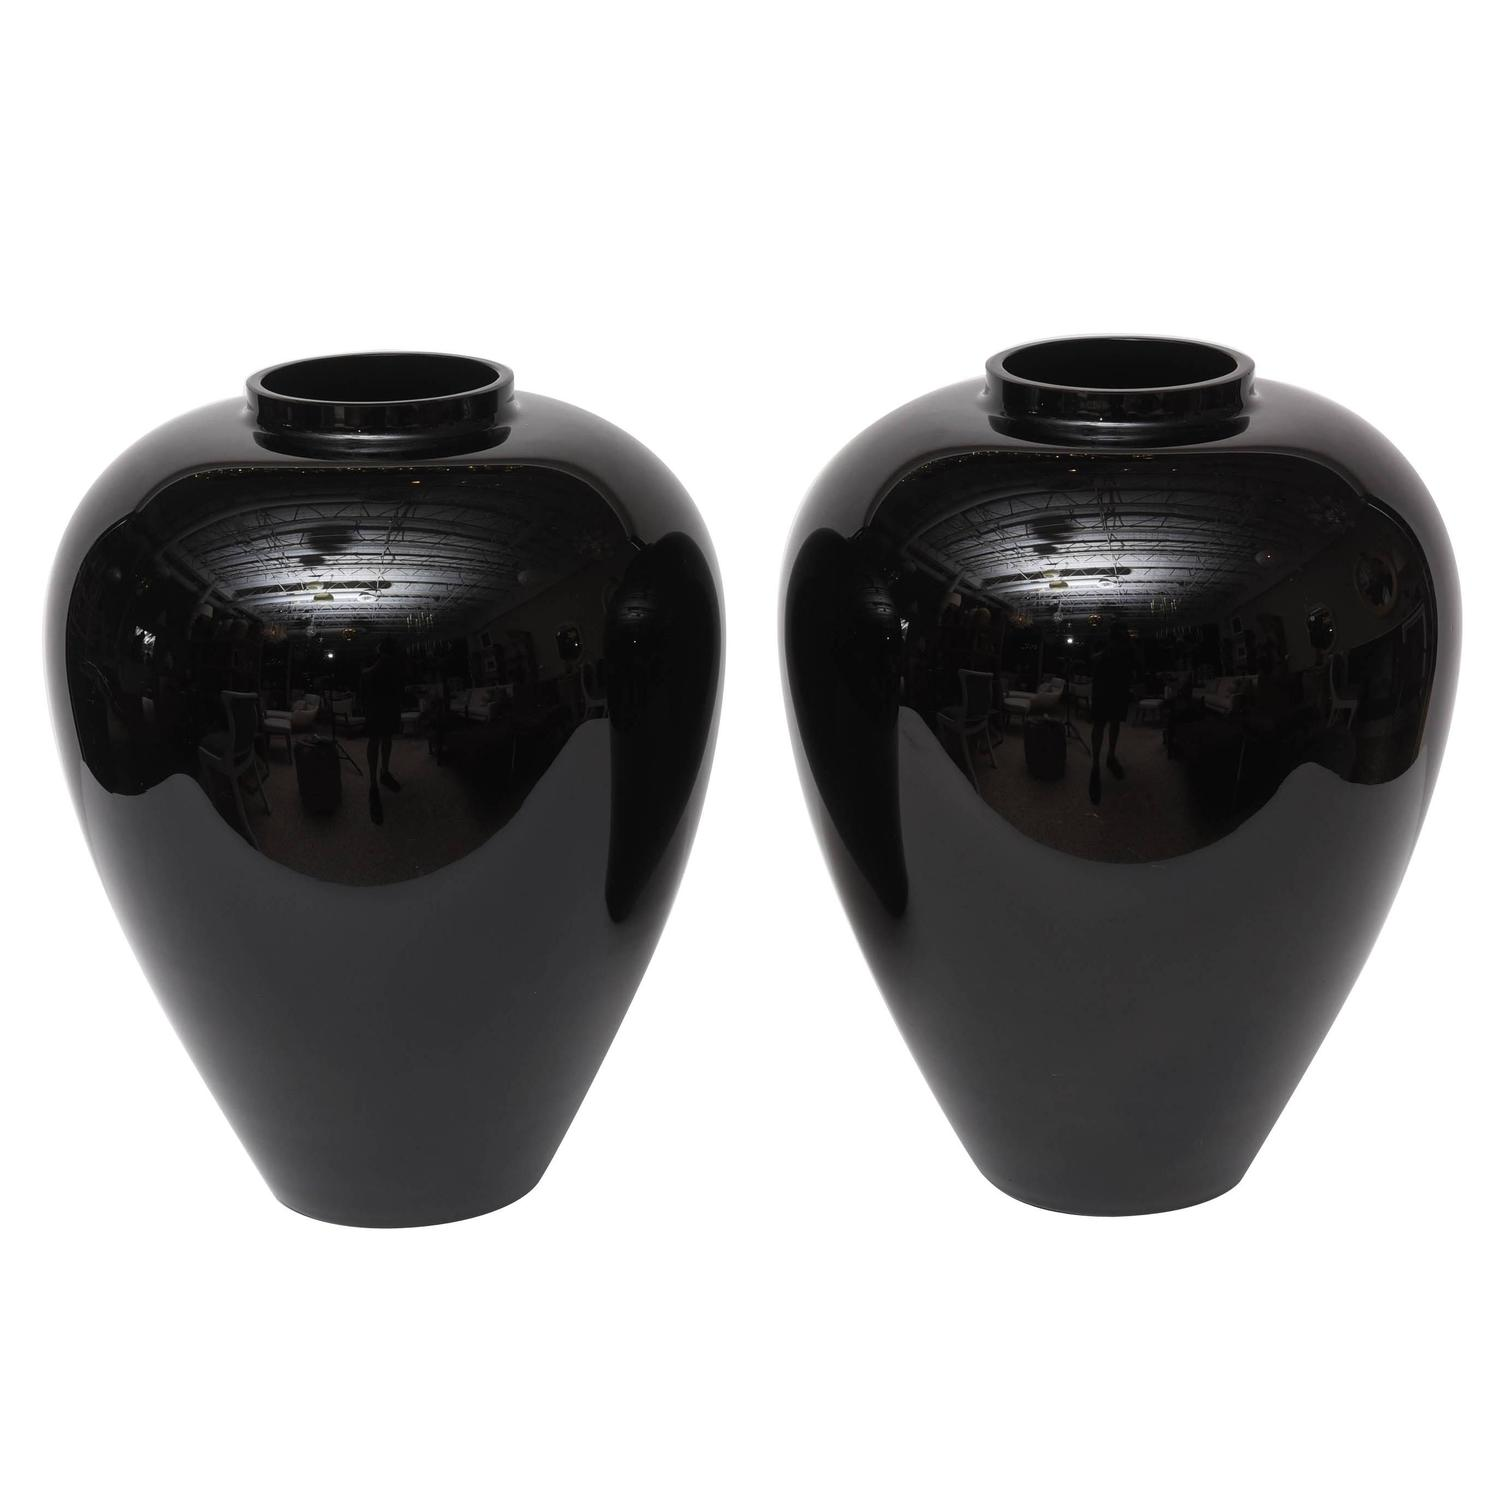 Barovier murano cornucopia vase dish for sale at 1stdibs pair of large black murano vases by barovier e toso reviewsmspy